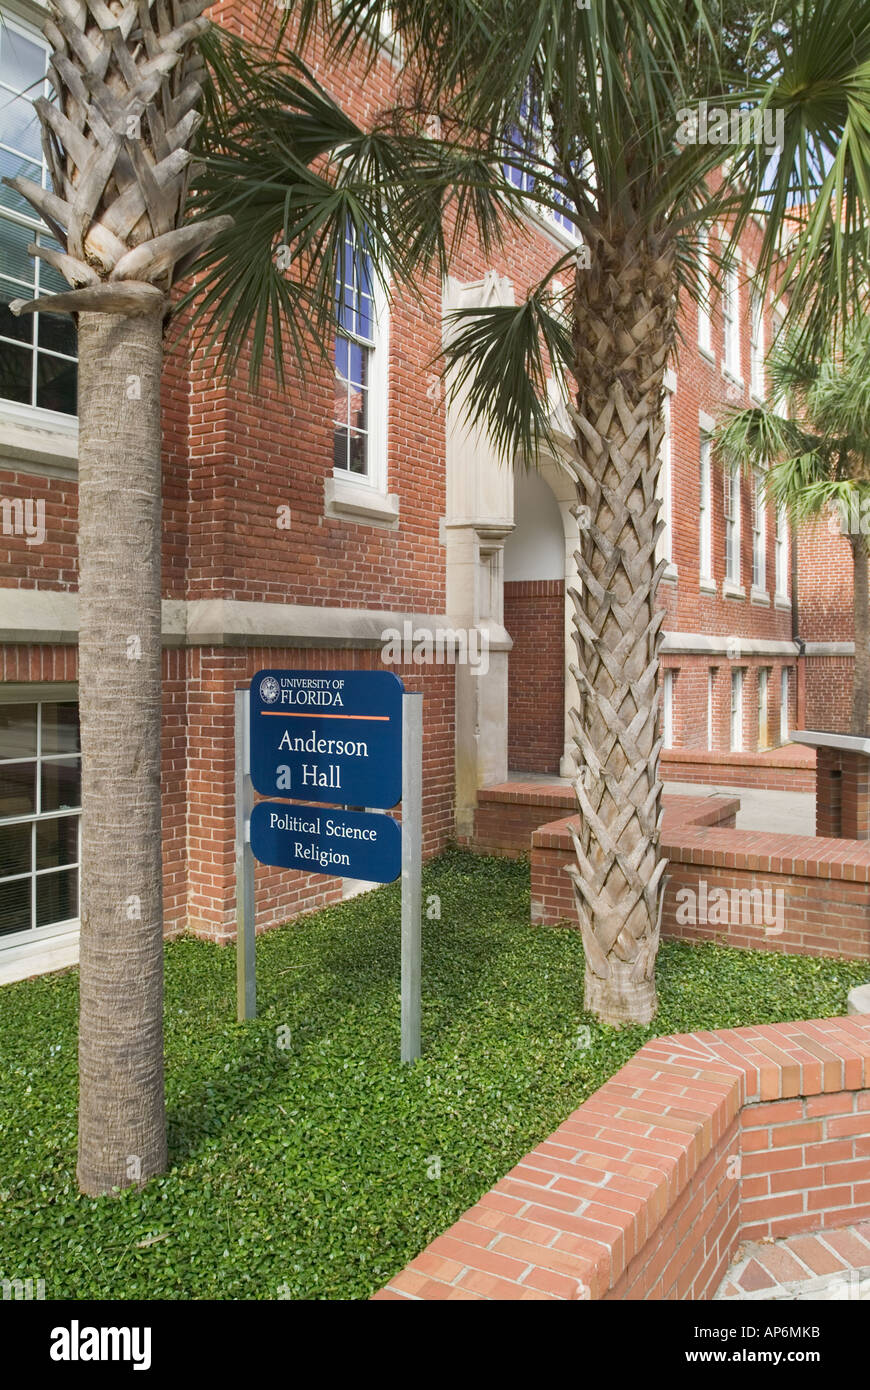 University of Florida campus Gainesville FL college school Anderson Hall building political science religion - Stock Image